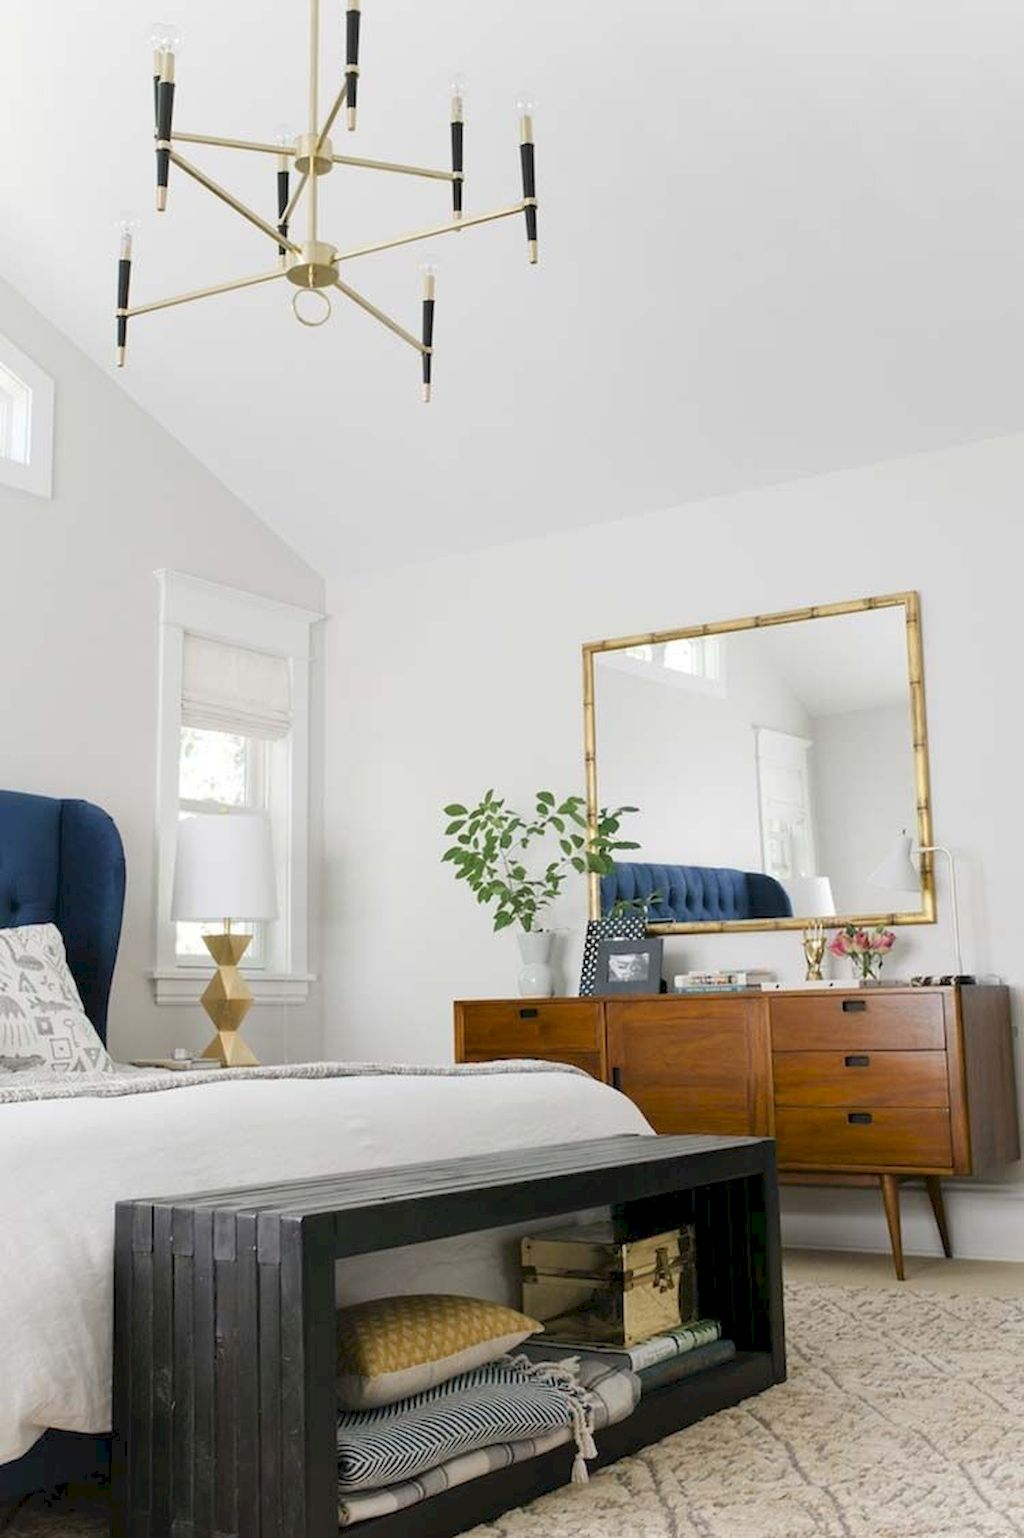 Minimalist Bedroom Concept with On Budget Furniture Ideas Part 40